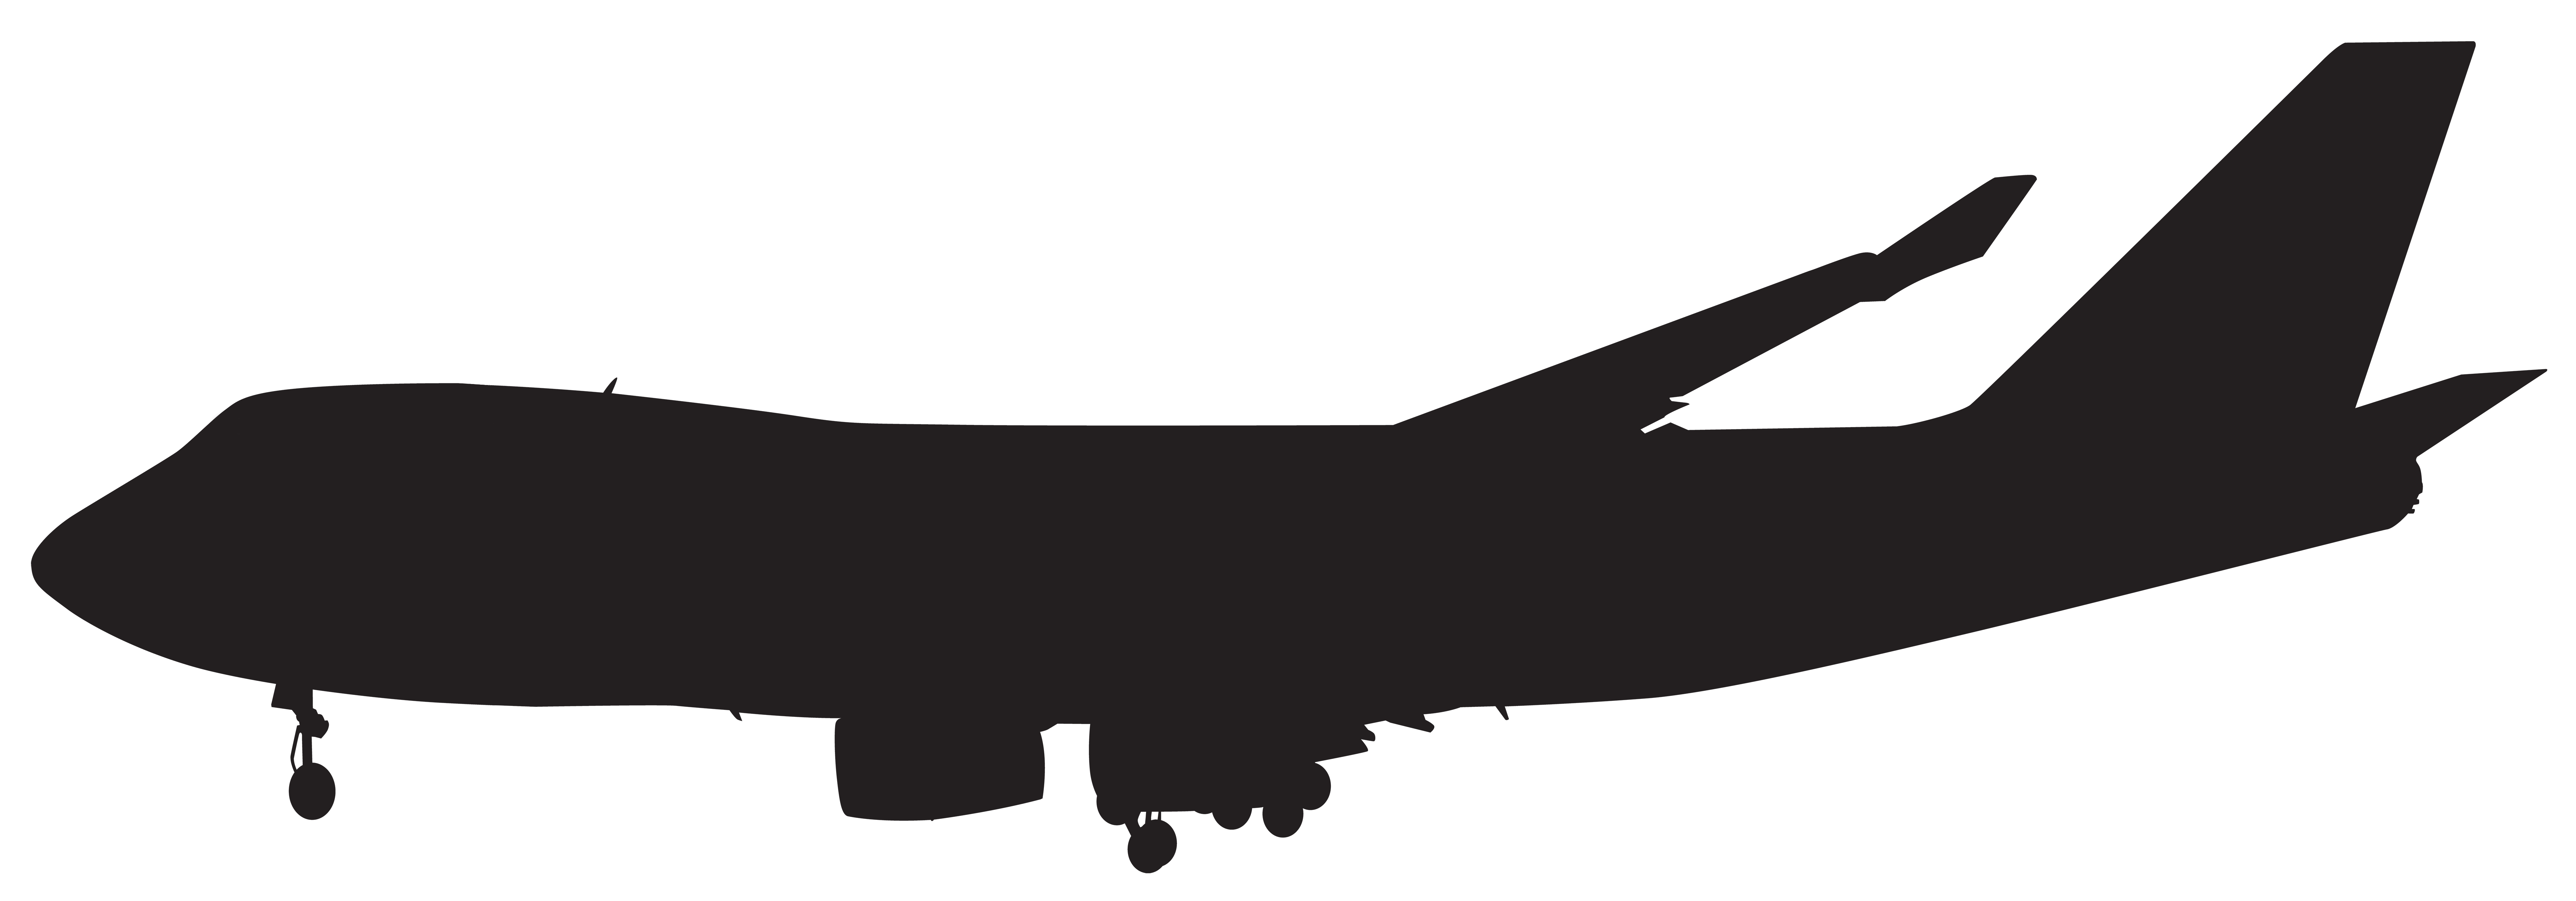 8000x2799 Airplane Silhouette Png Clip Artu200b Gallery Yopriceville